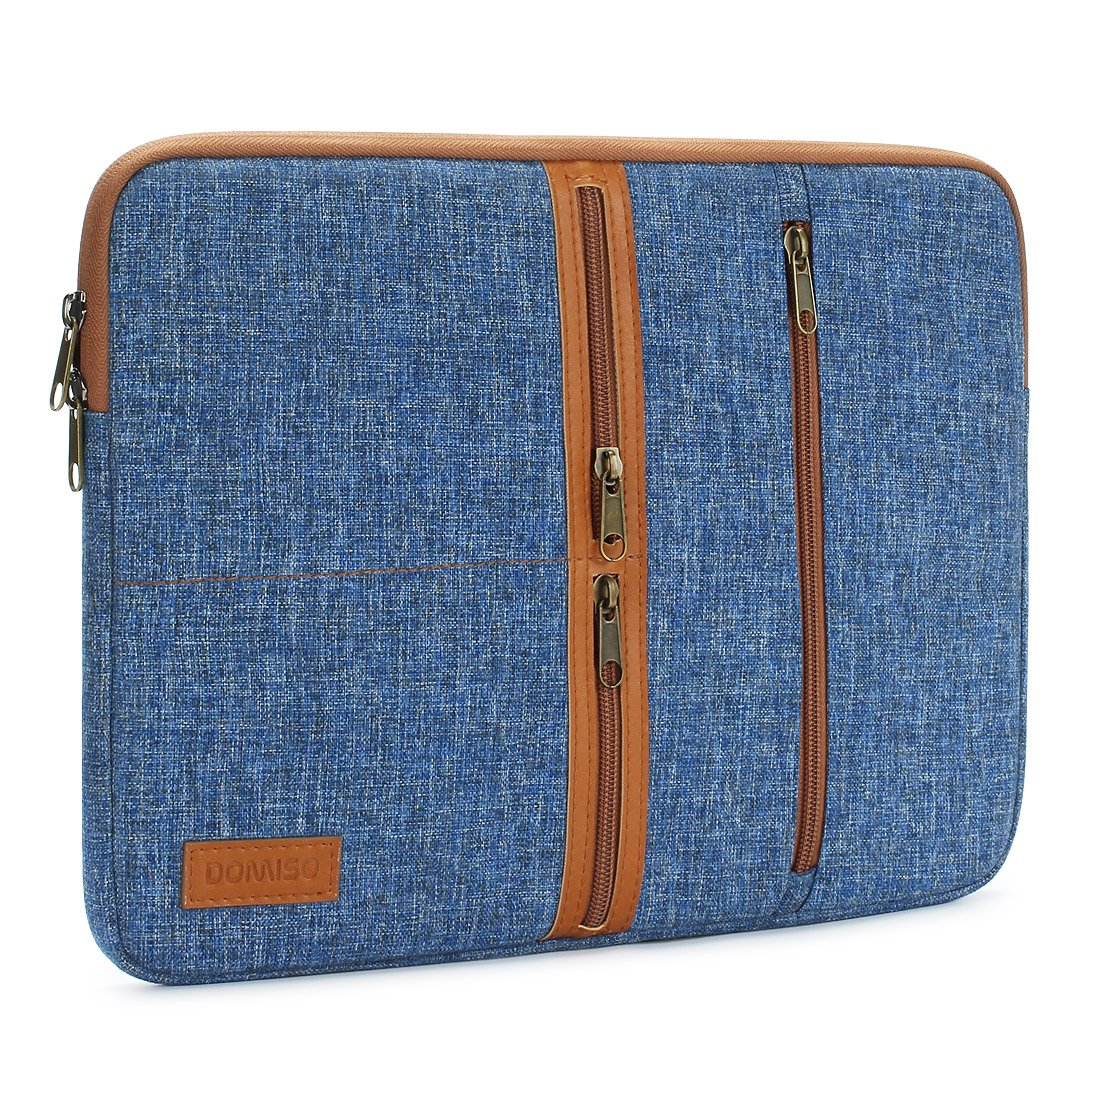 "DOMISO 10 Inch Laptop Sleeve Canvas Notebook with Zipper Tablet Pouch Cover 3 Layer Protection Bag 2 Pockets Case for 12"" MacBook 3 / 10.8"" Microsoft Surface 3, Blue"